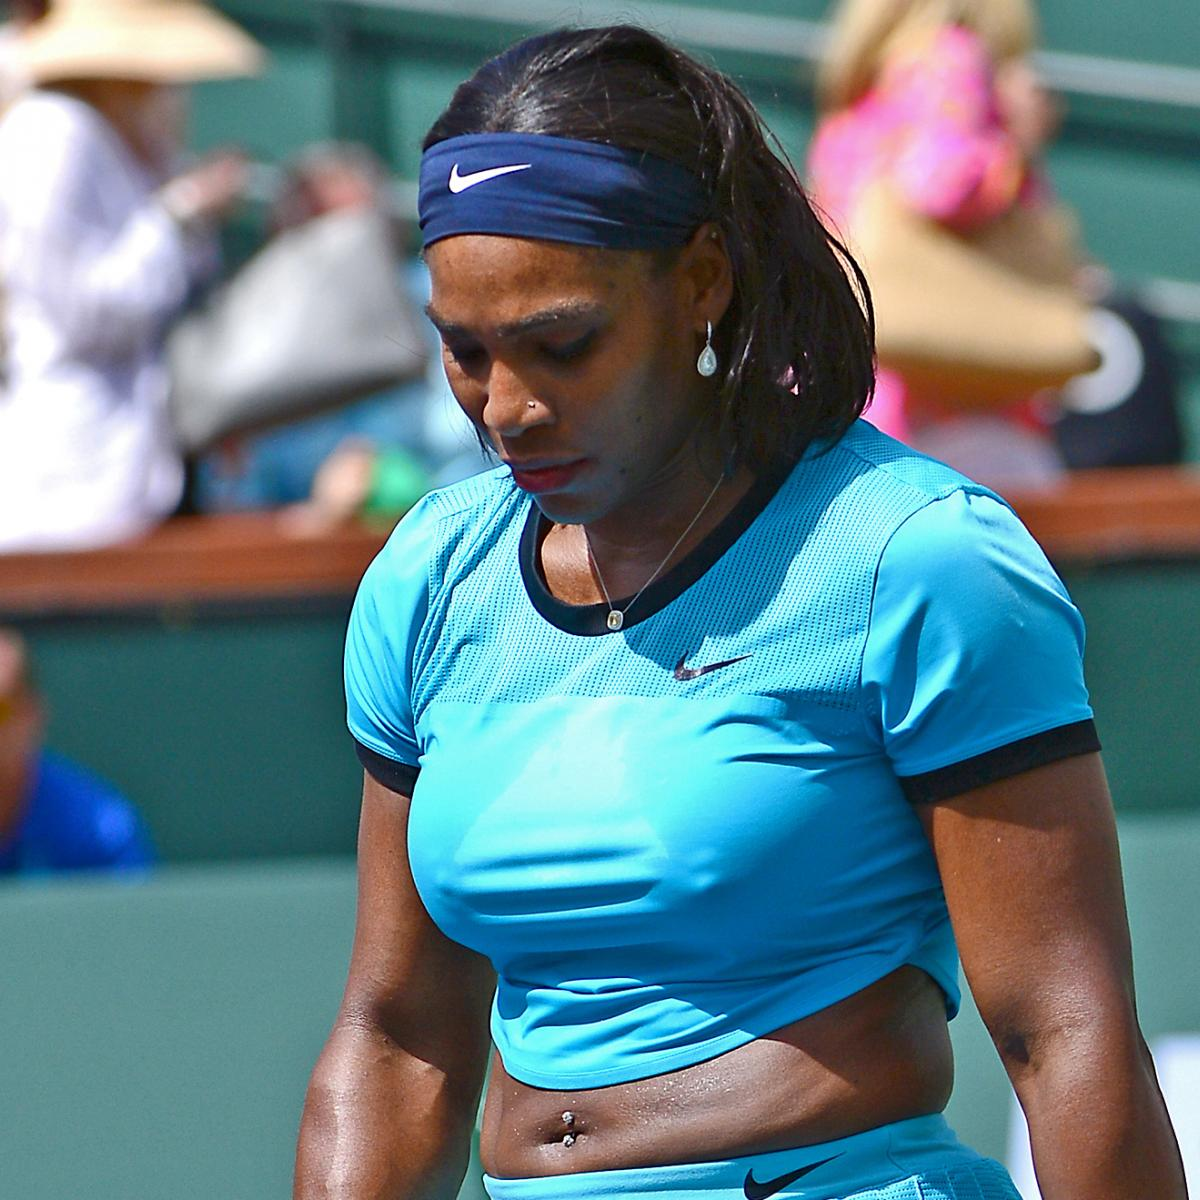 Latest News Updates: Serena Williams Injury: Updates On Tennis Star's Shoulder